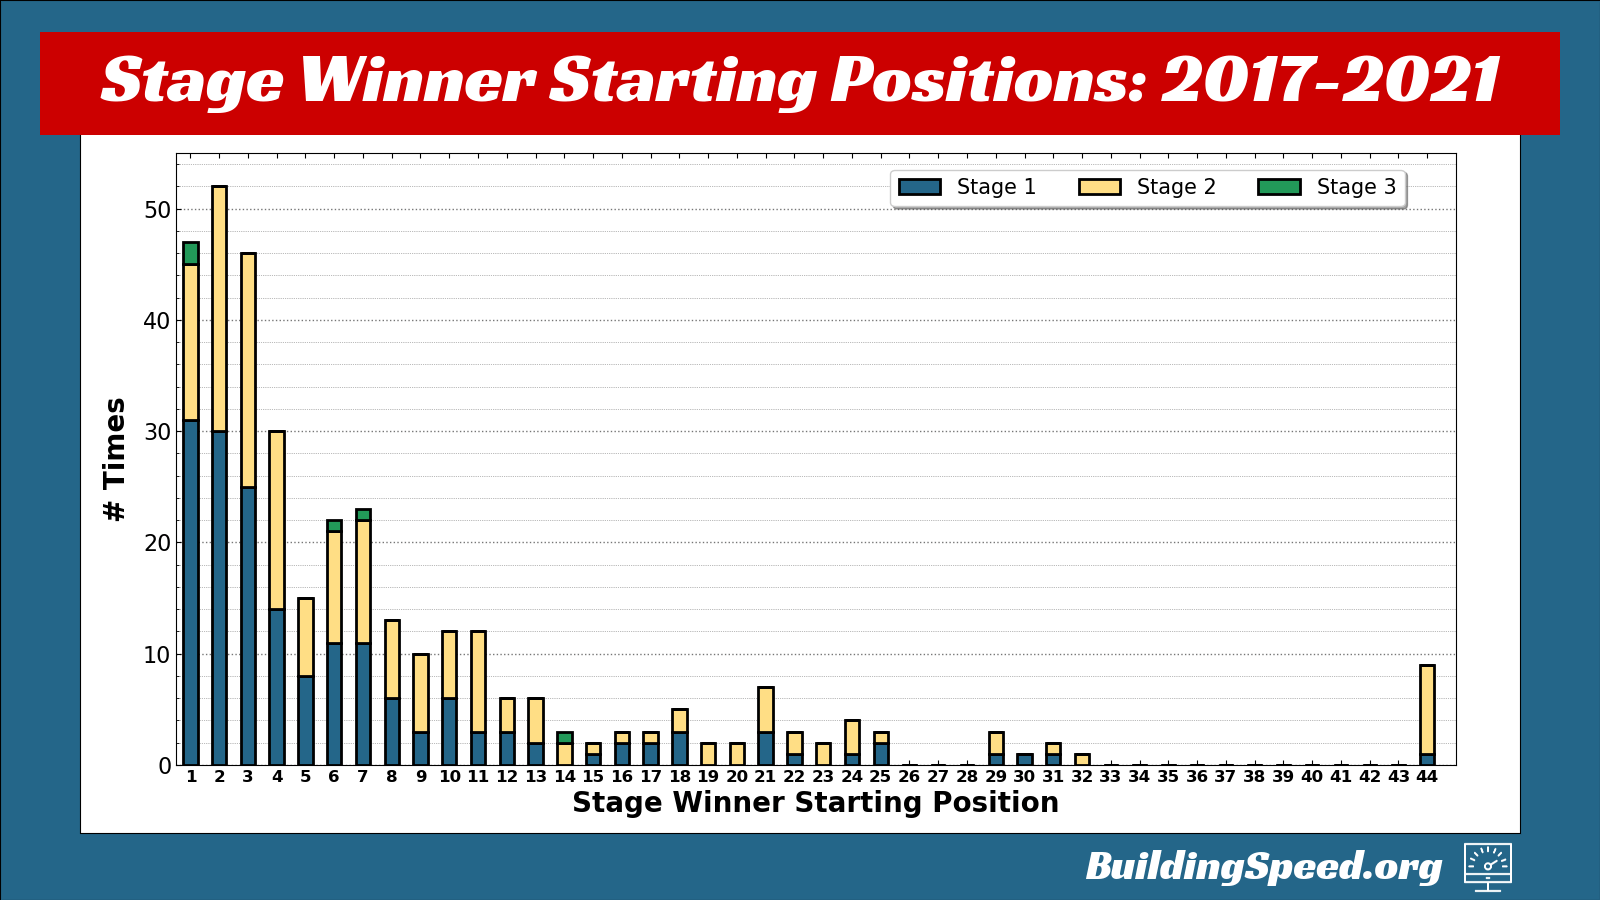 Stage point wins in a vertical stacked bar chart from 2017-2021